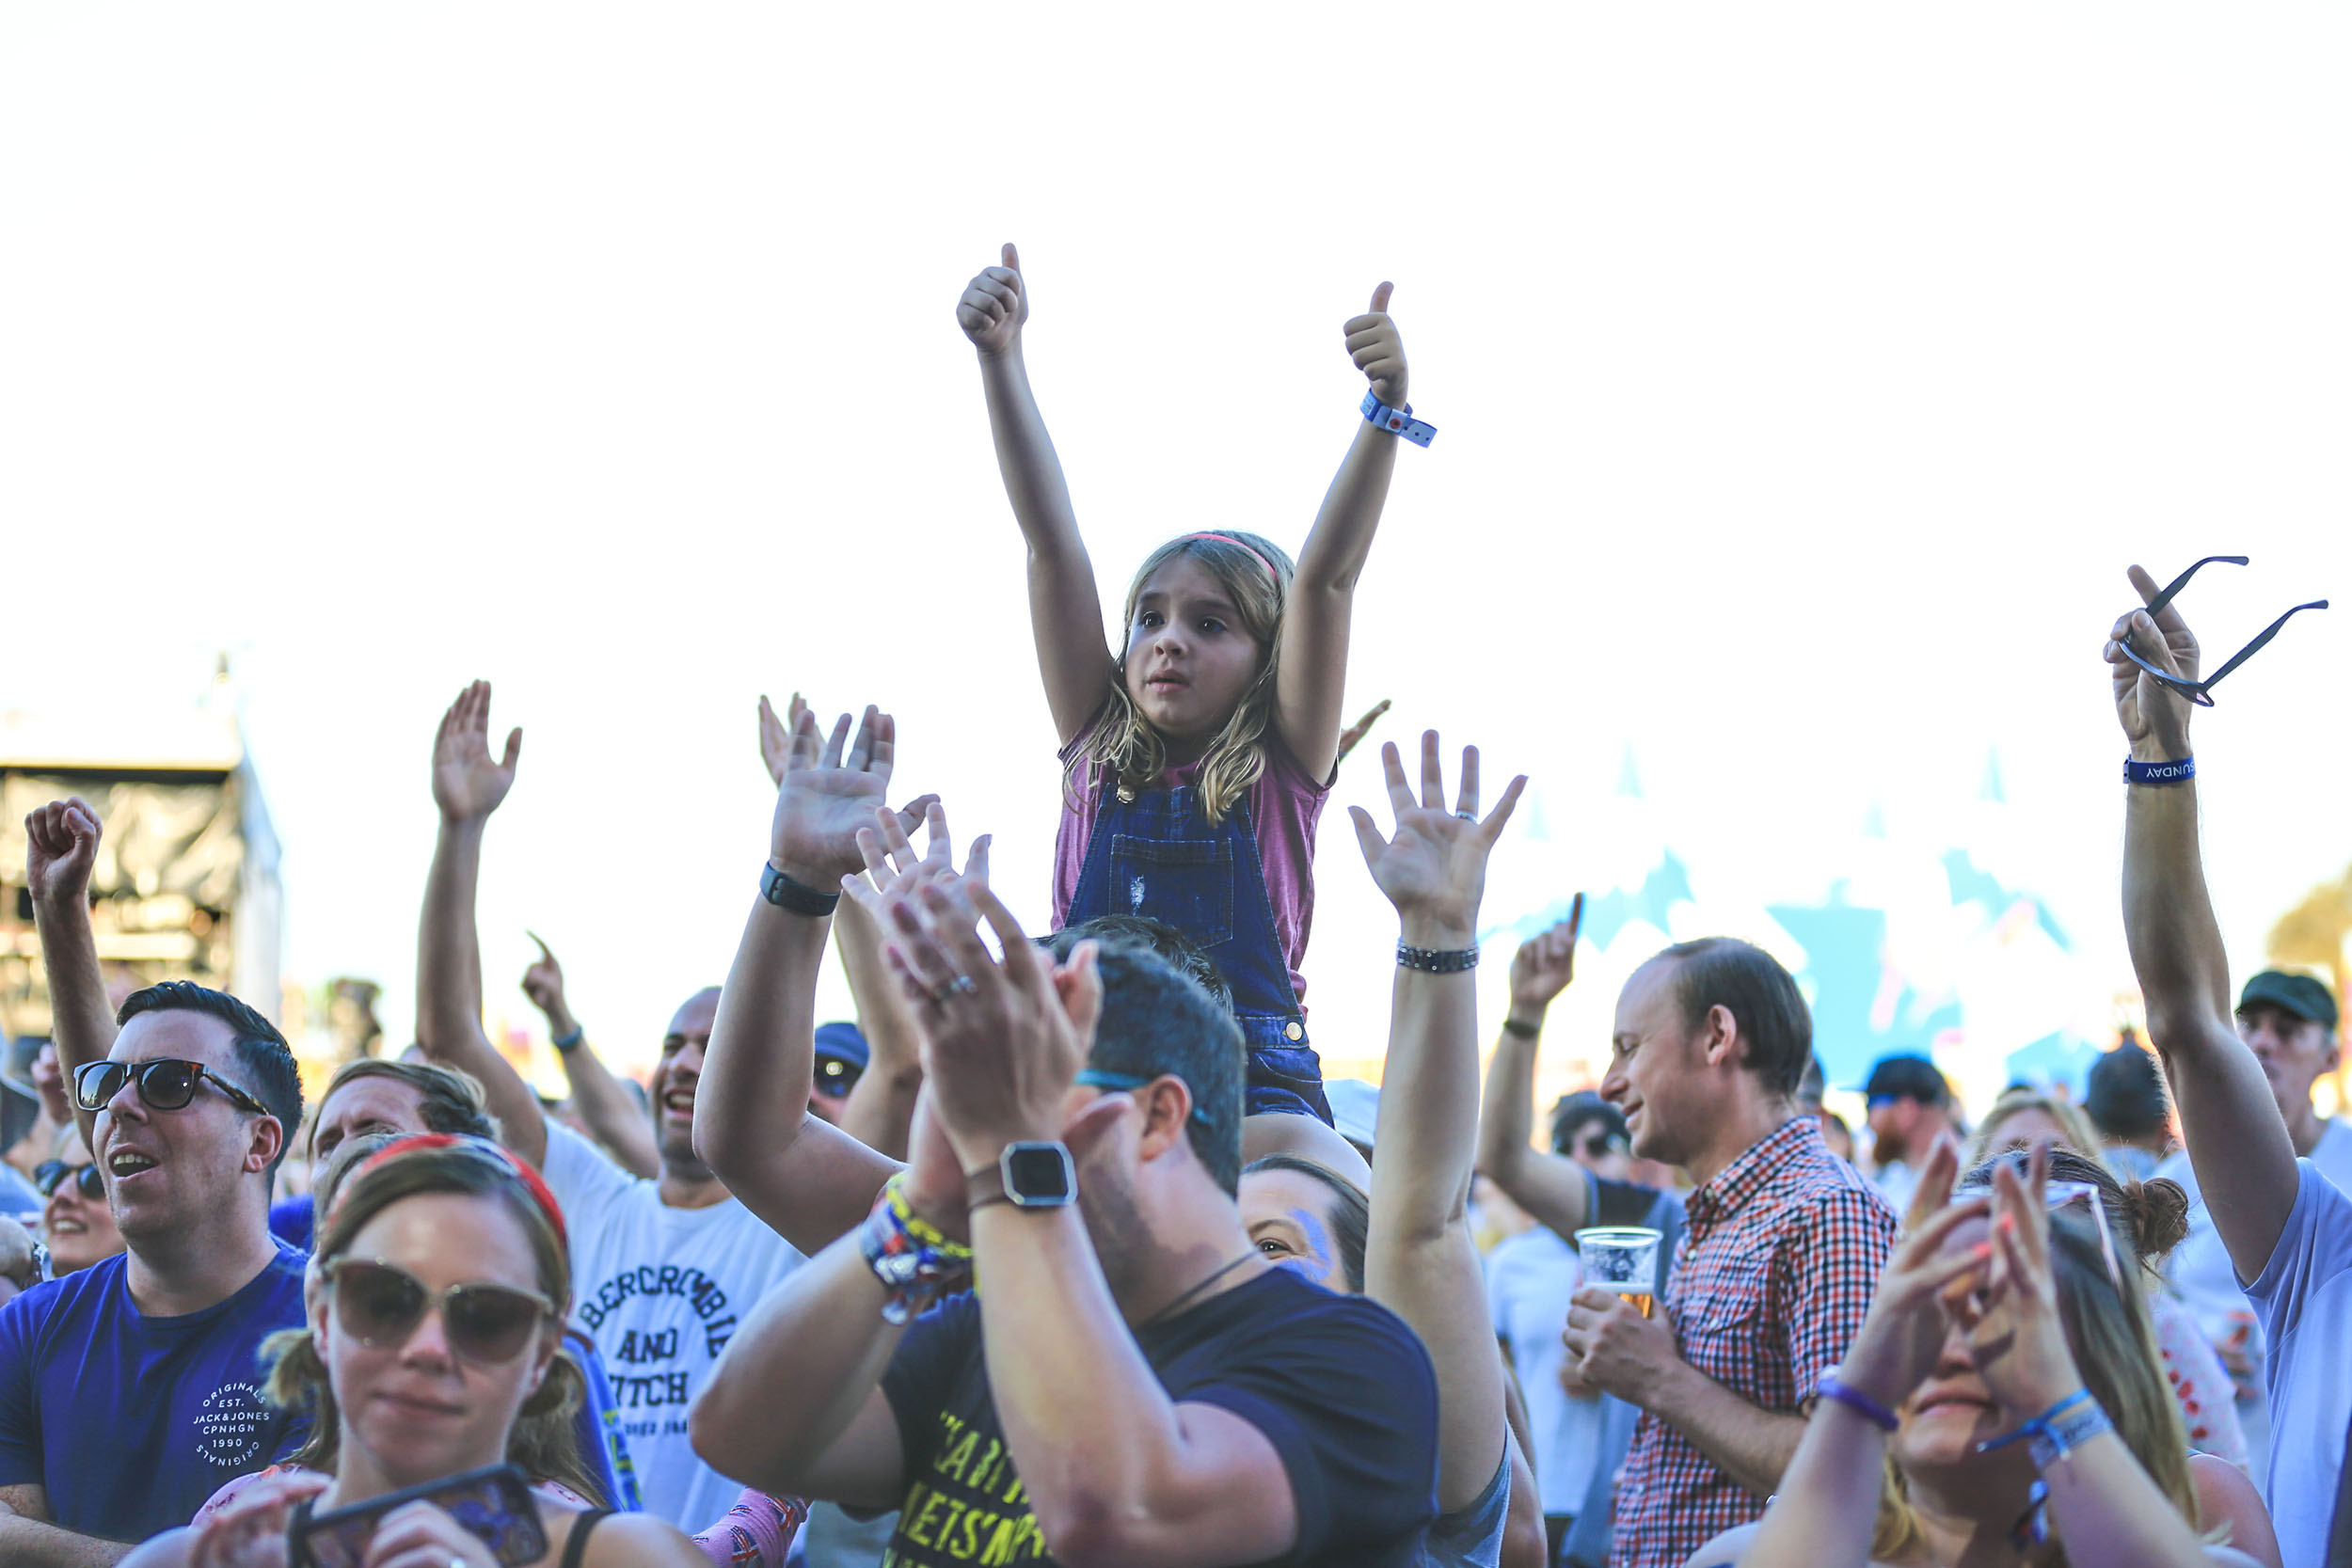 COOL BRITANNIA FESTIVAL 2018 GIRL ON SHOULDERS